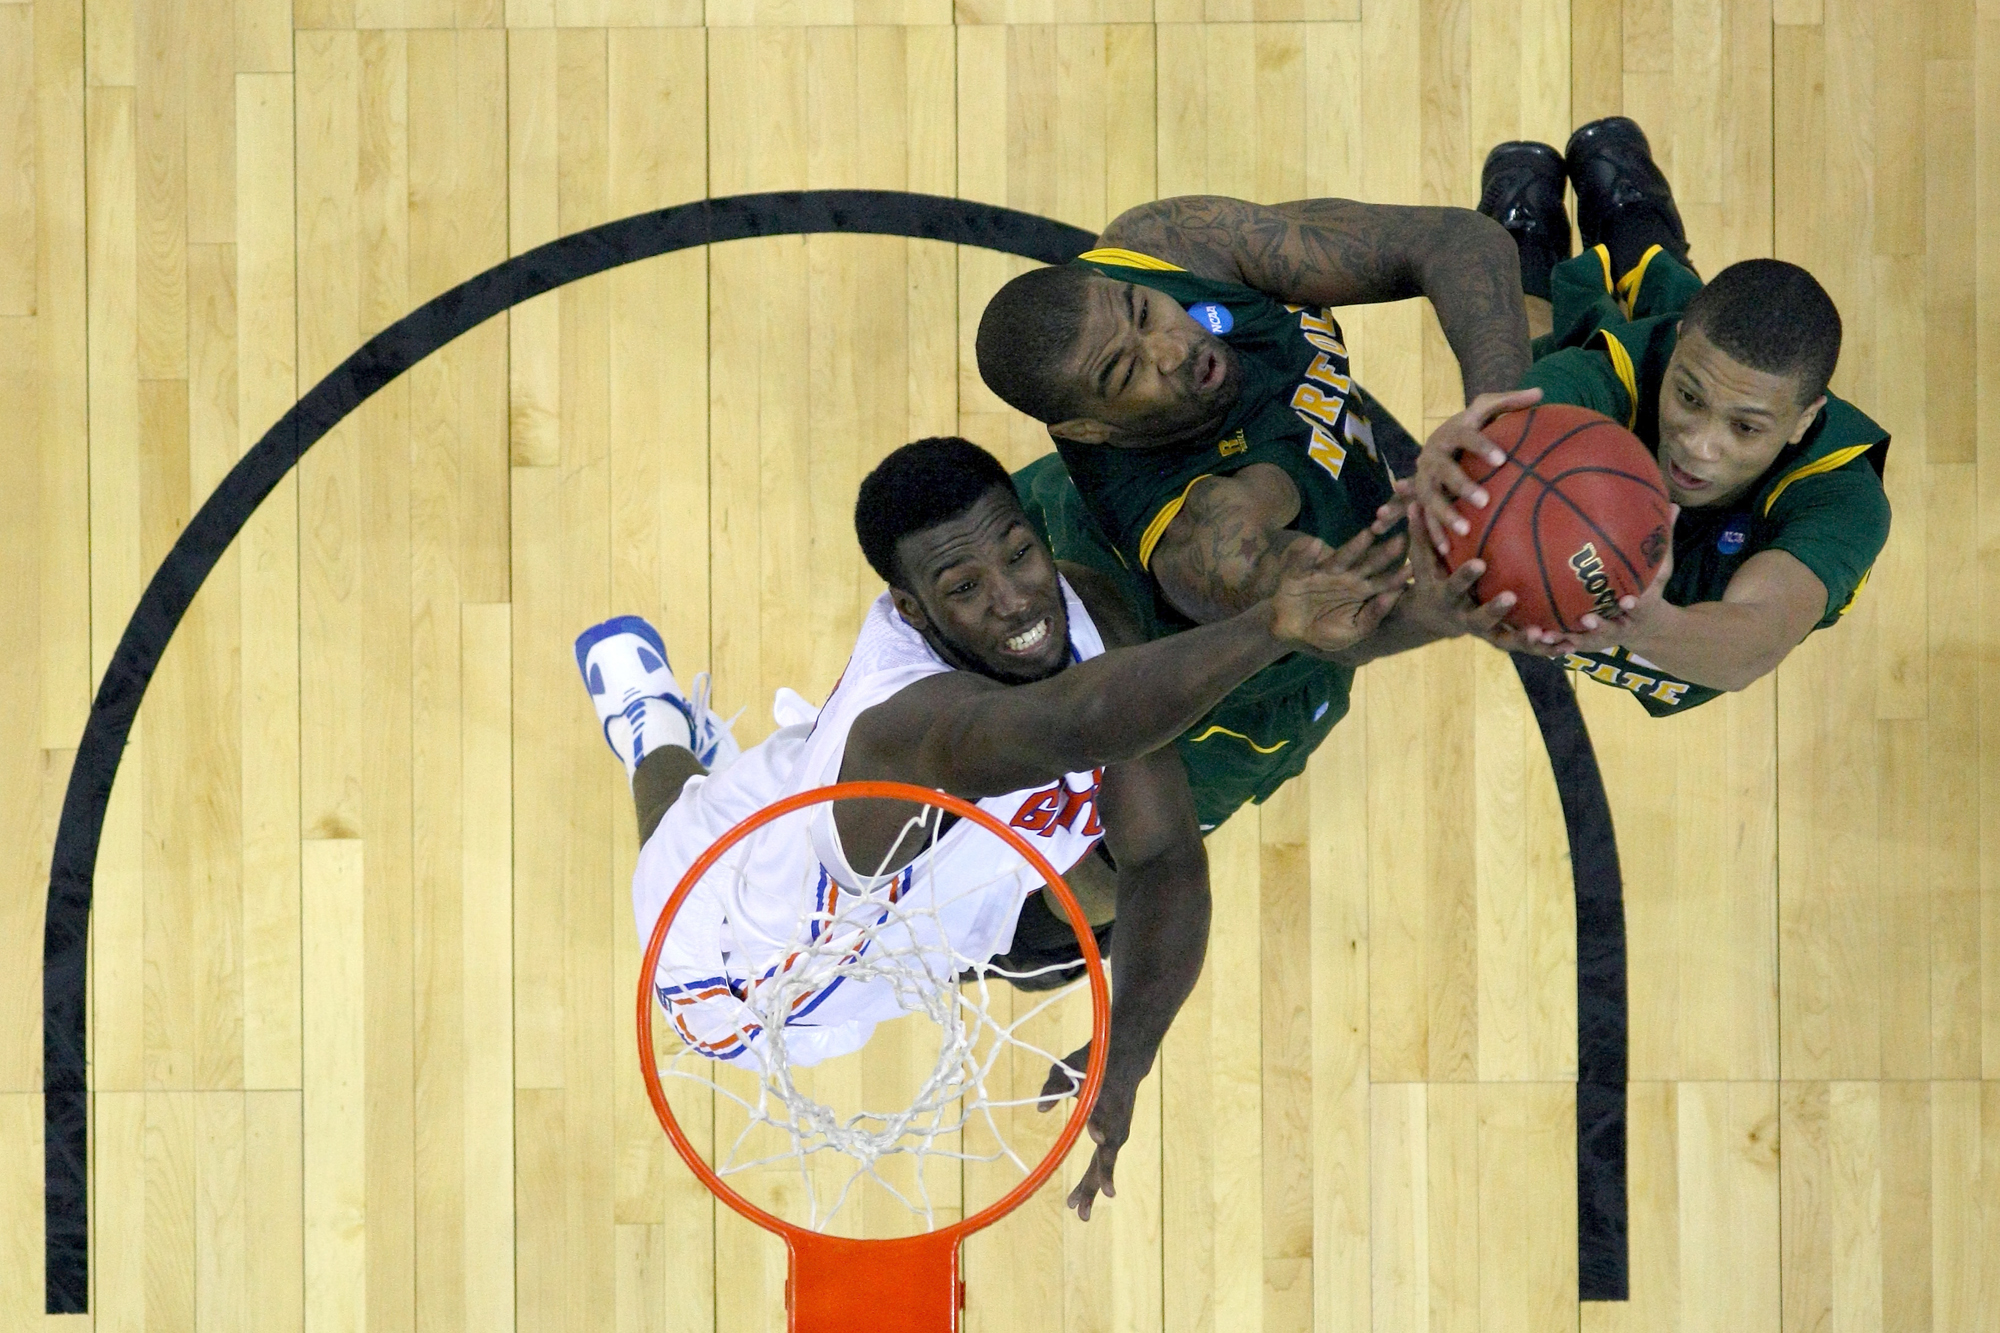 Patric Young #4 of the Florida Gators fights for a rebound against Kyle O'Quinn #10 (C) and Pendarvis Williams #11 of the Norfolk State Spartans during the third round of the 2012 NCAA Men's Basketball Tournament at CenturyLink Center on March 18, 2012 in Omaha, Nebraska.